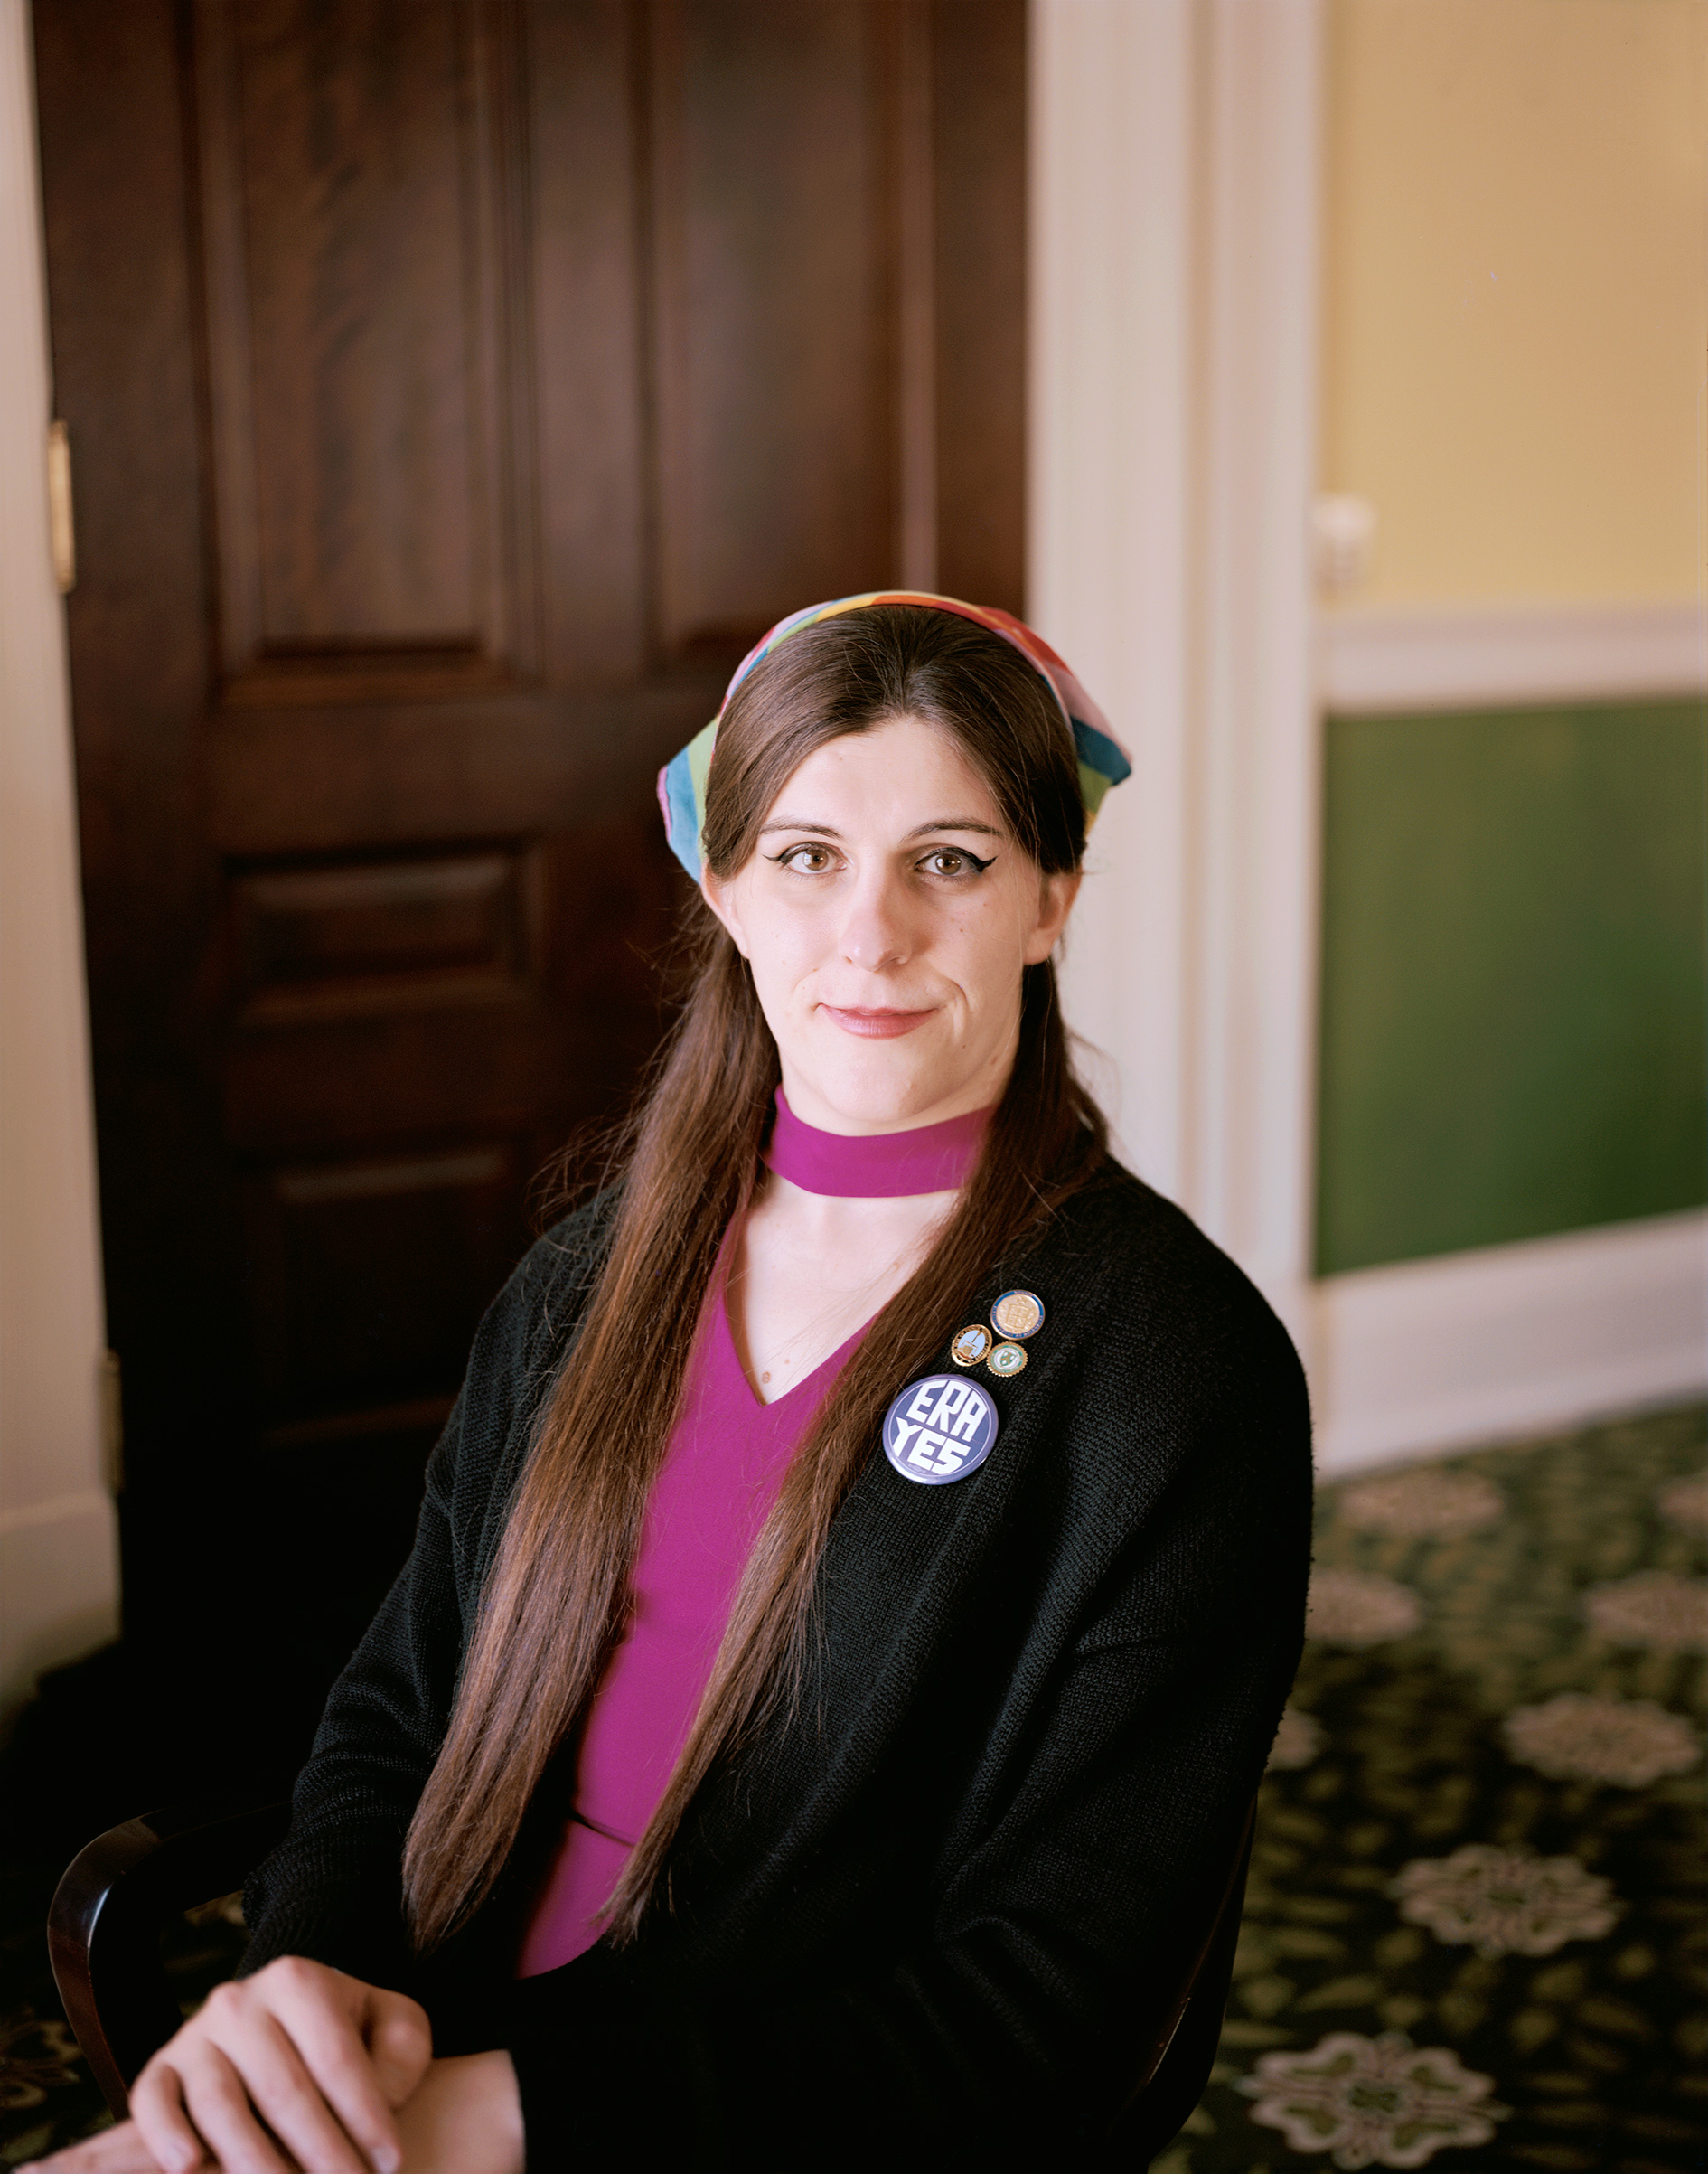 Del. Danica Roem at the Virginia State Capitol in Richmond, Va., May 10, 2018.